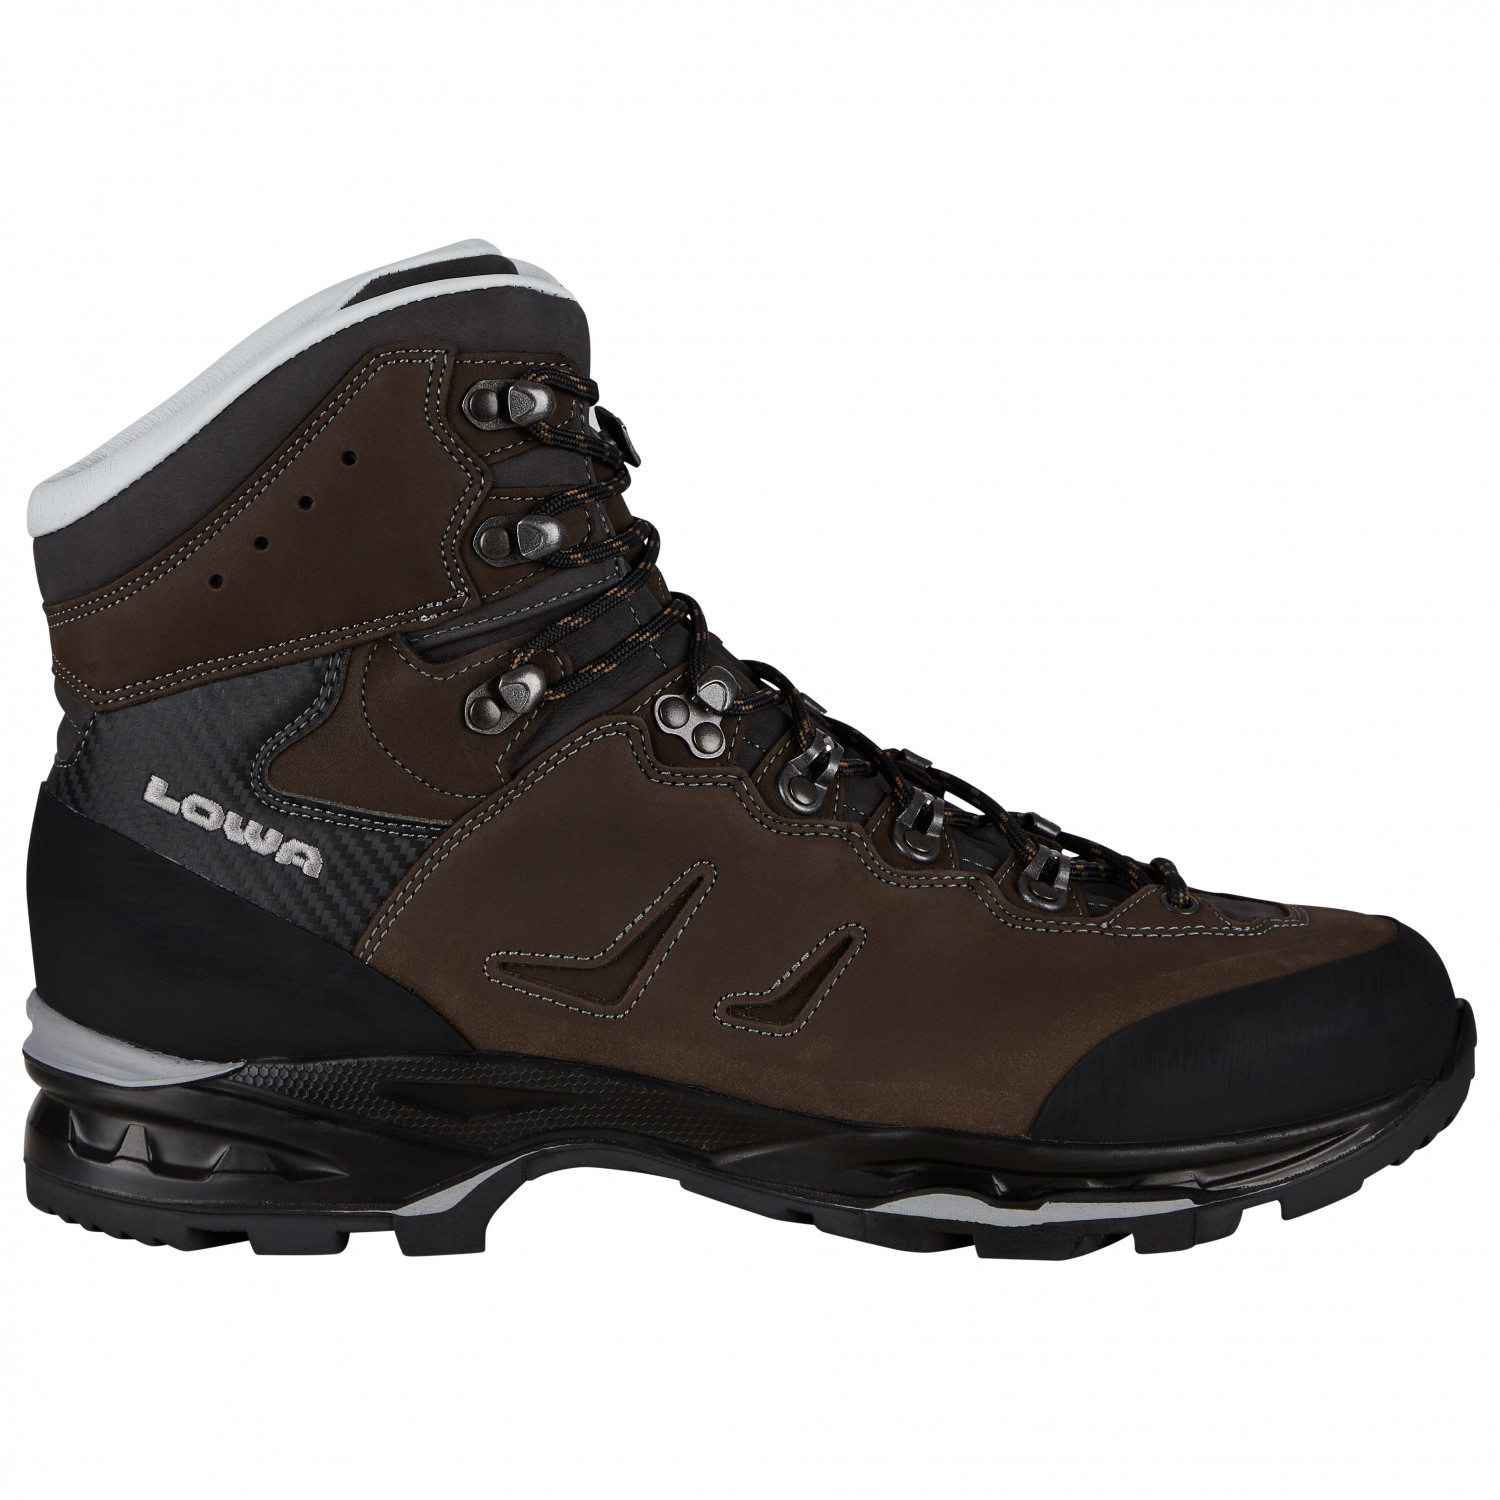 Lowa Camino LL - Walking Boots Men's | Free UK Delivery